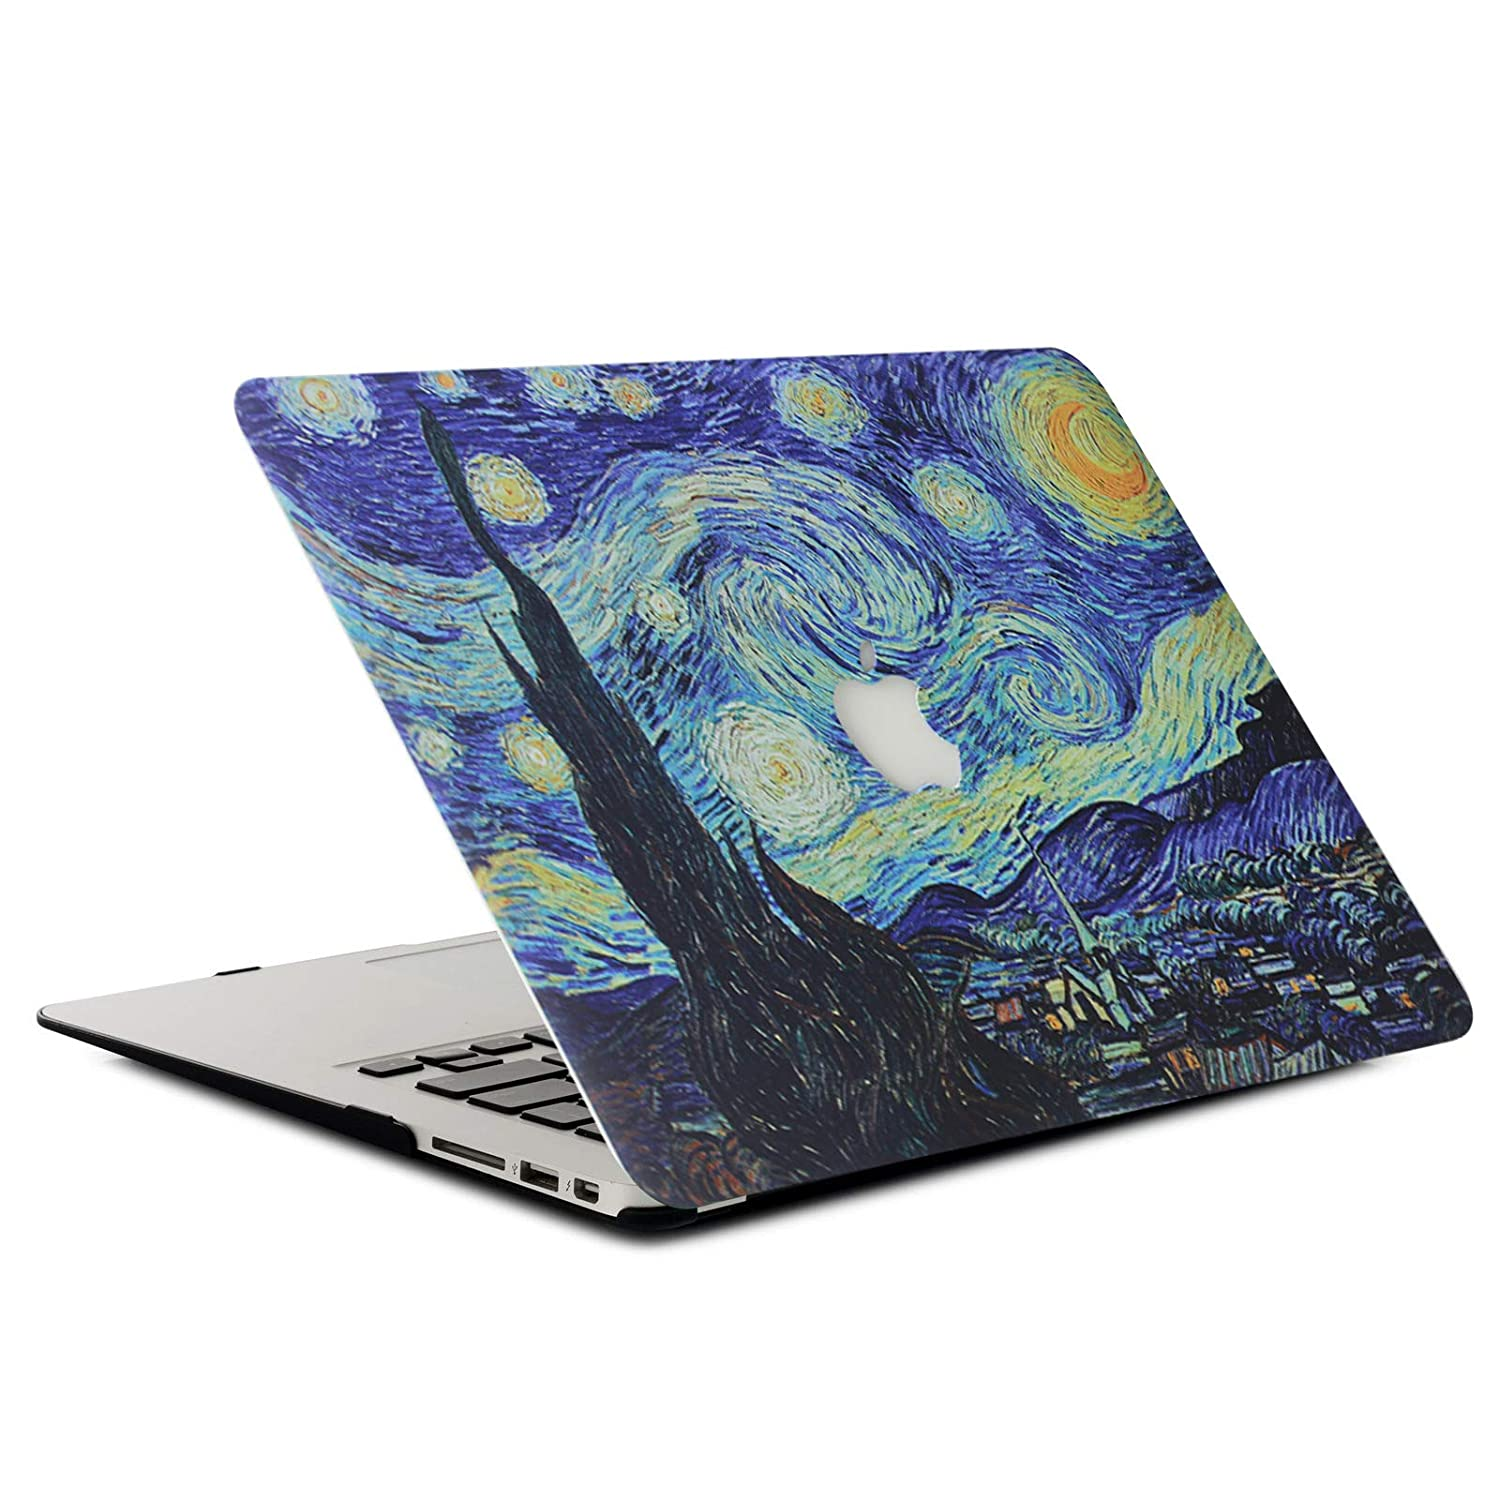 Starry Night Laptop Shell Protective Hard Case for Apple MacBook Air 13.3